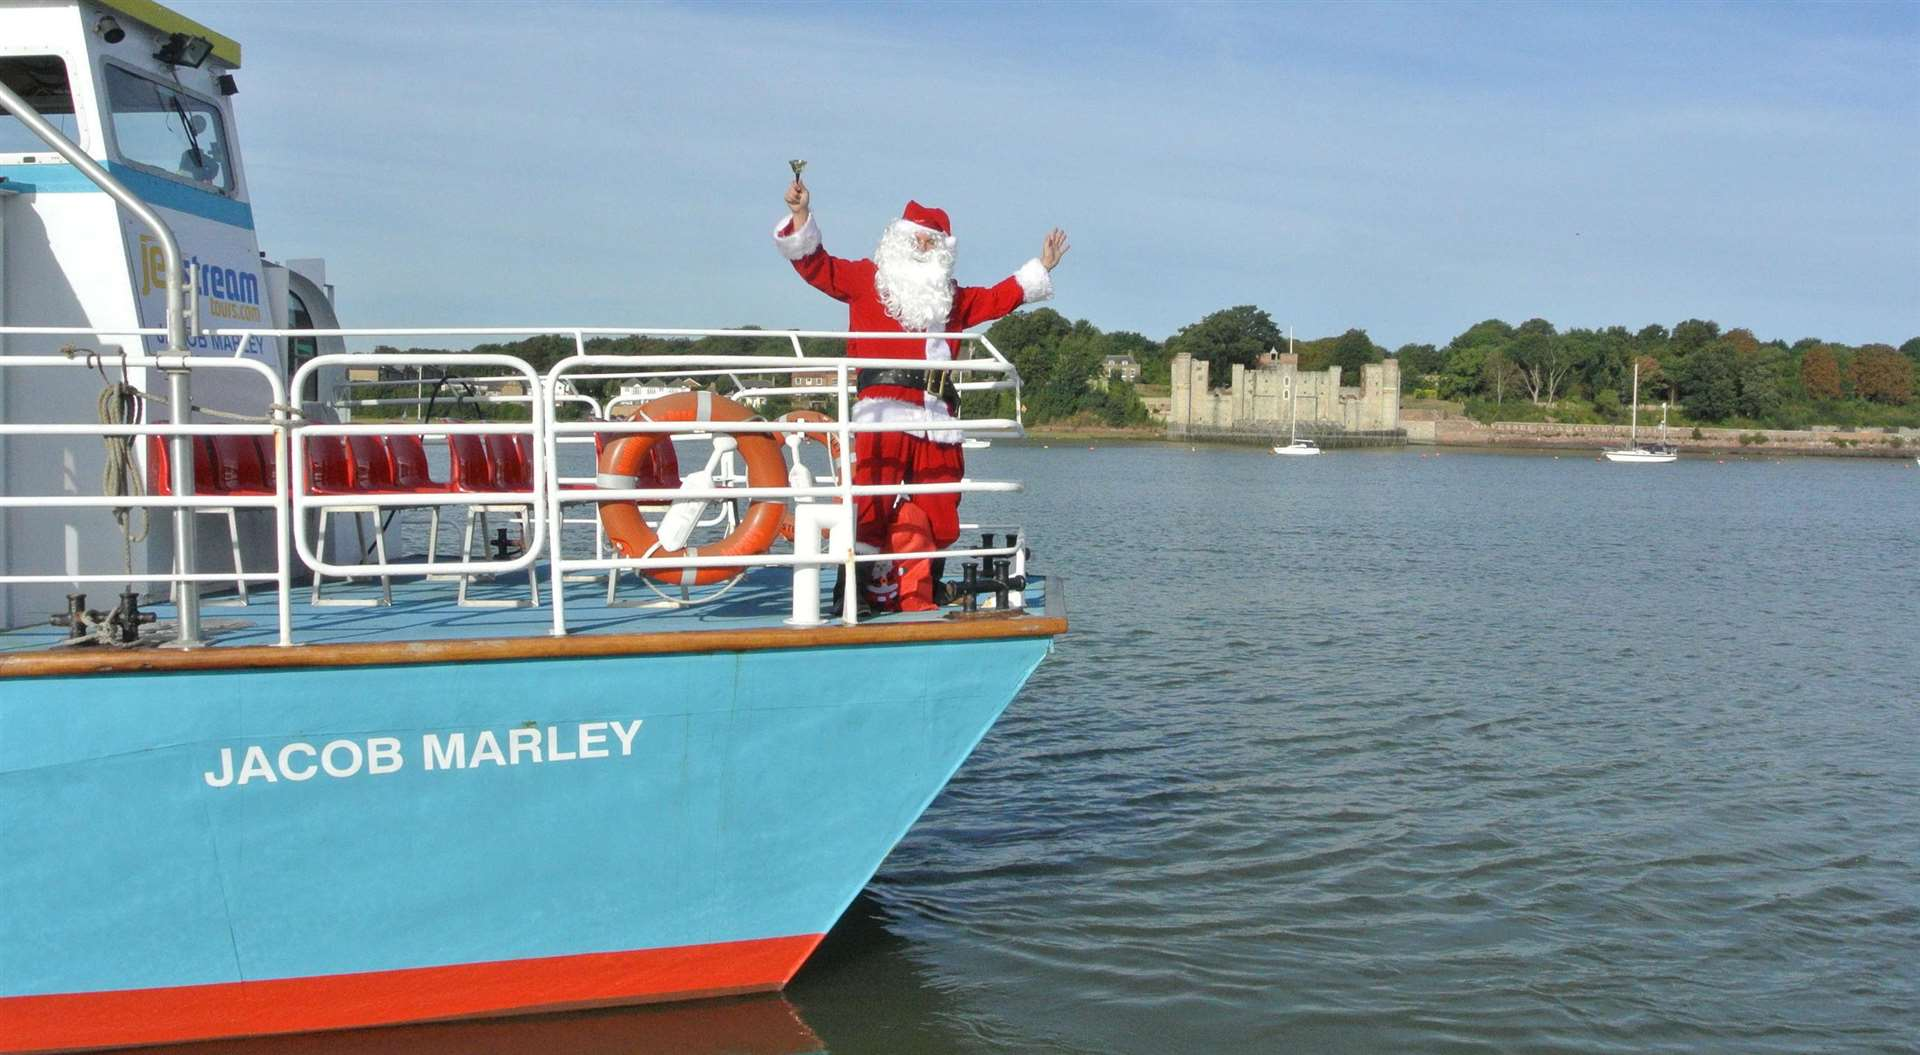 Jet Stream Tours are launching their Christmas Carol Sail with Santa